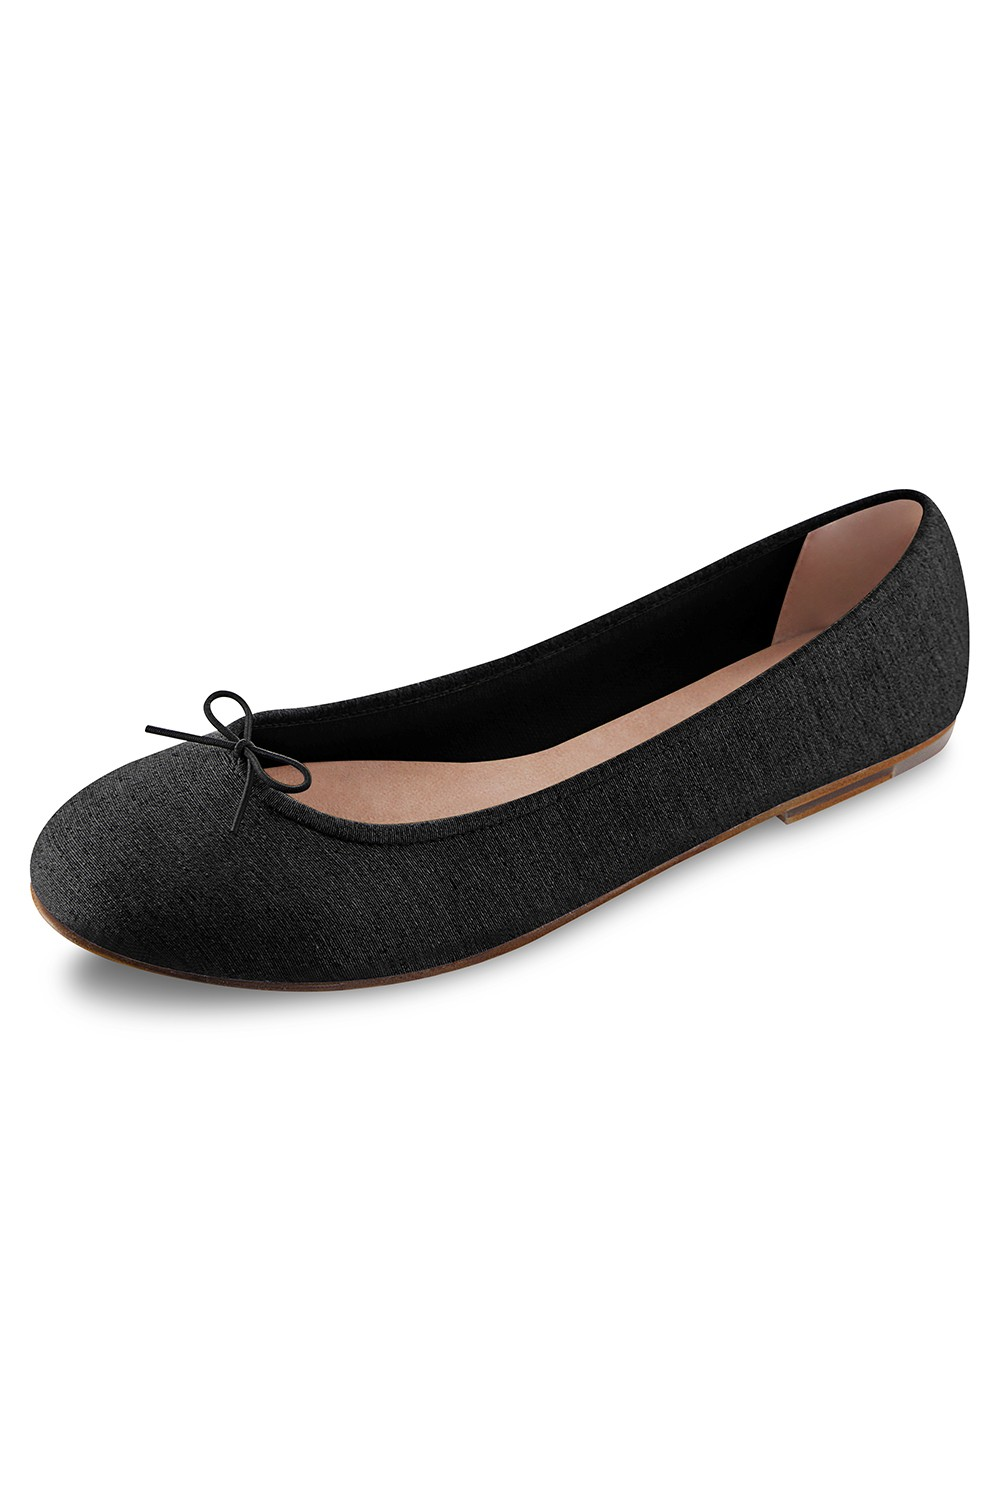 Jeanne Ladies Ballet Flat Womens Fashion Shoes